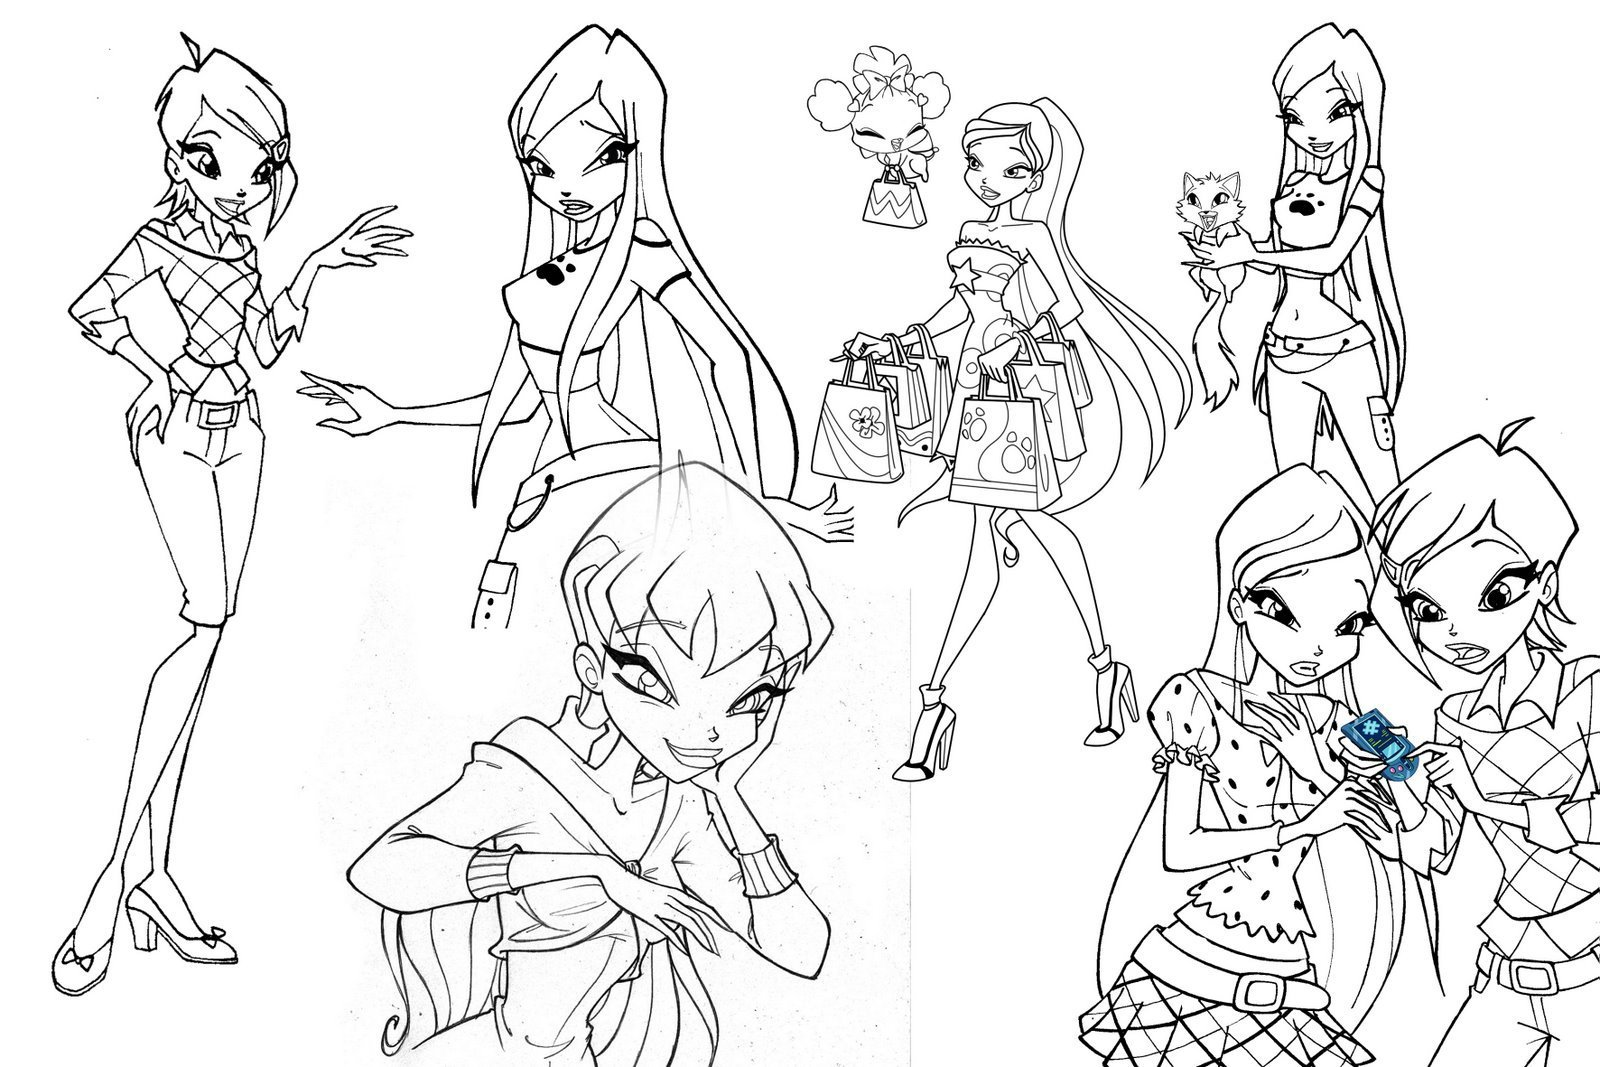 picture winx club winx club bloom drawing at getdrawings free download club picture winx